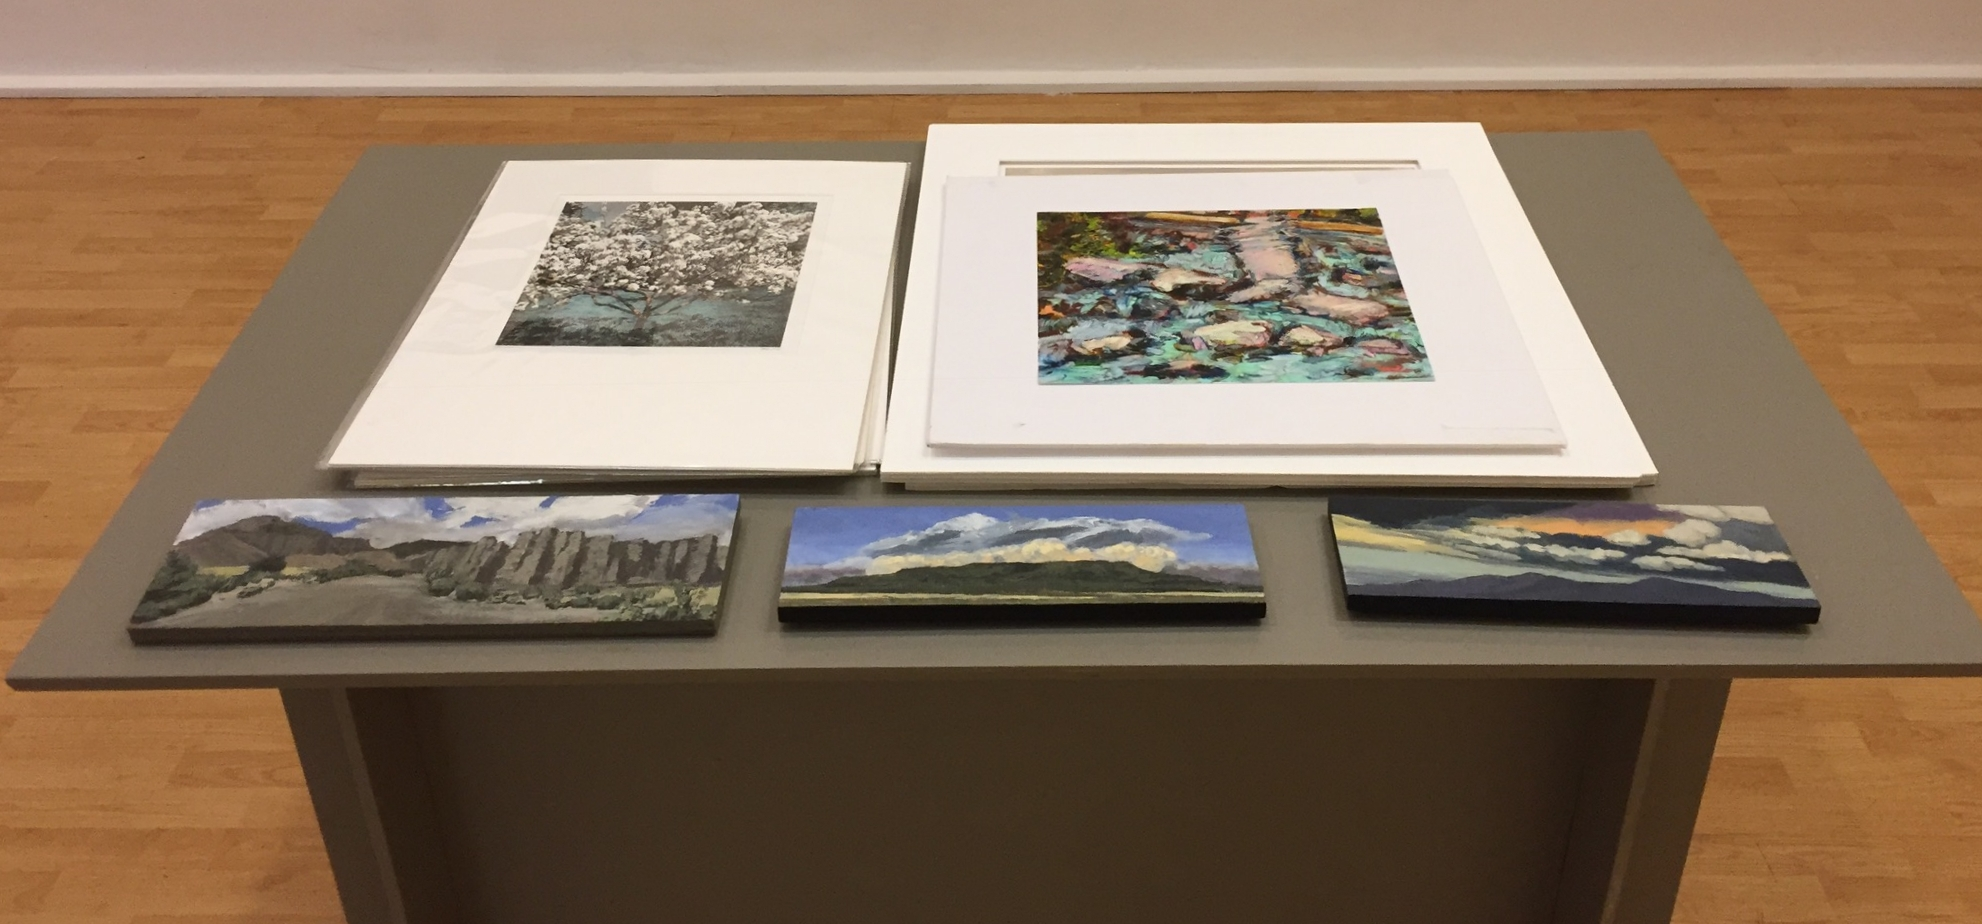 Lil' landscapes on display